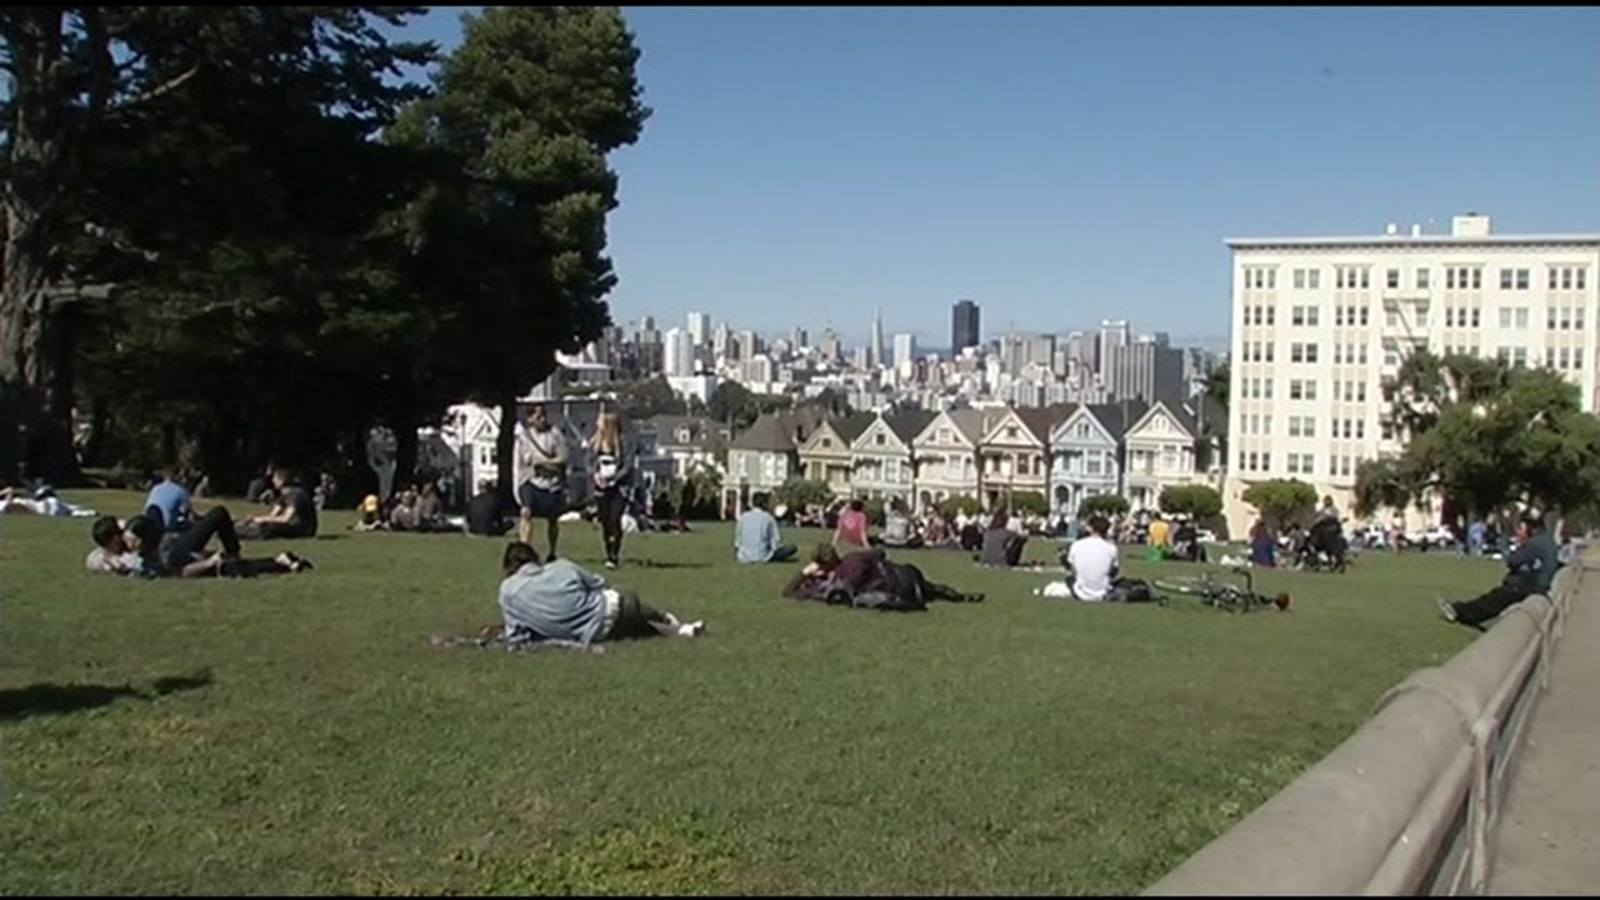 Study: Sunny day in park as good as Christmas